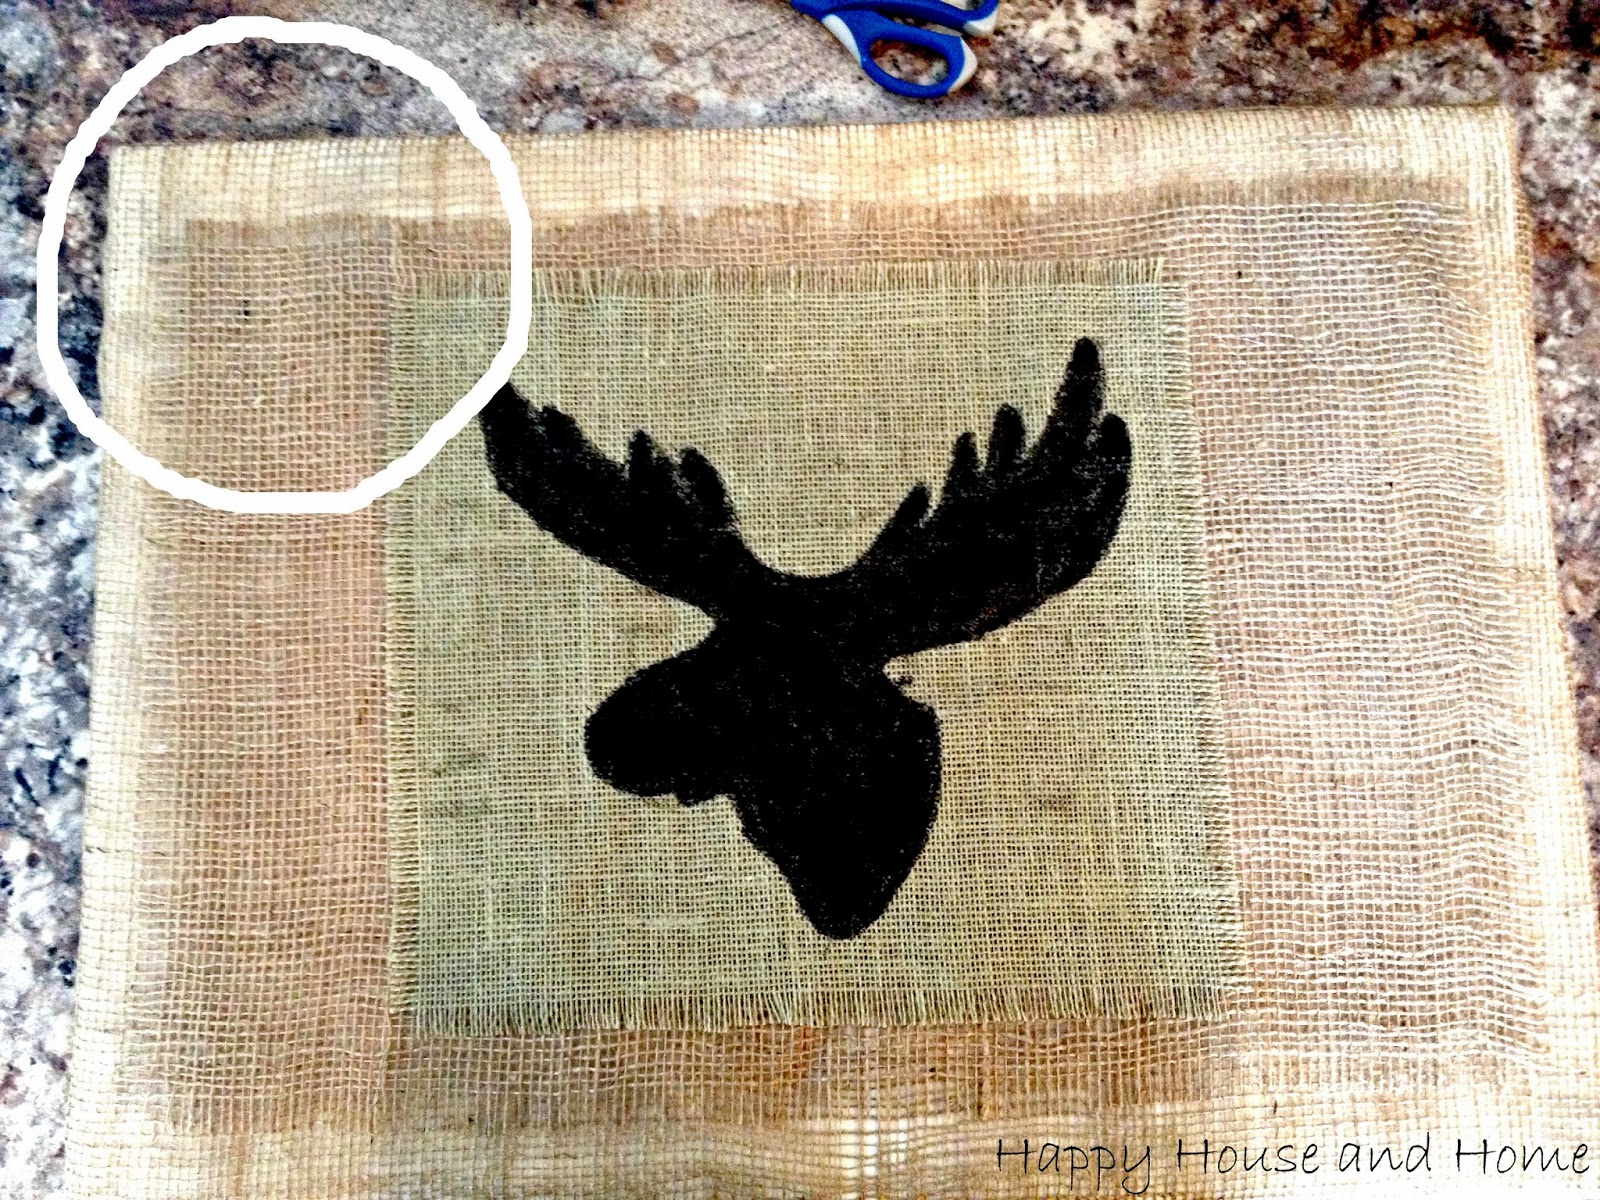 burlap crafts, DIY wall art, using burlap in decor, burlap projects, DIY burlap project